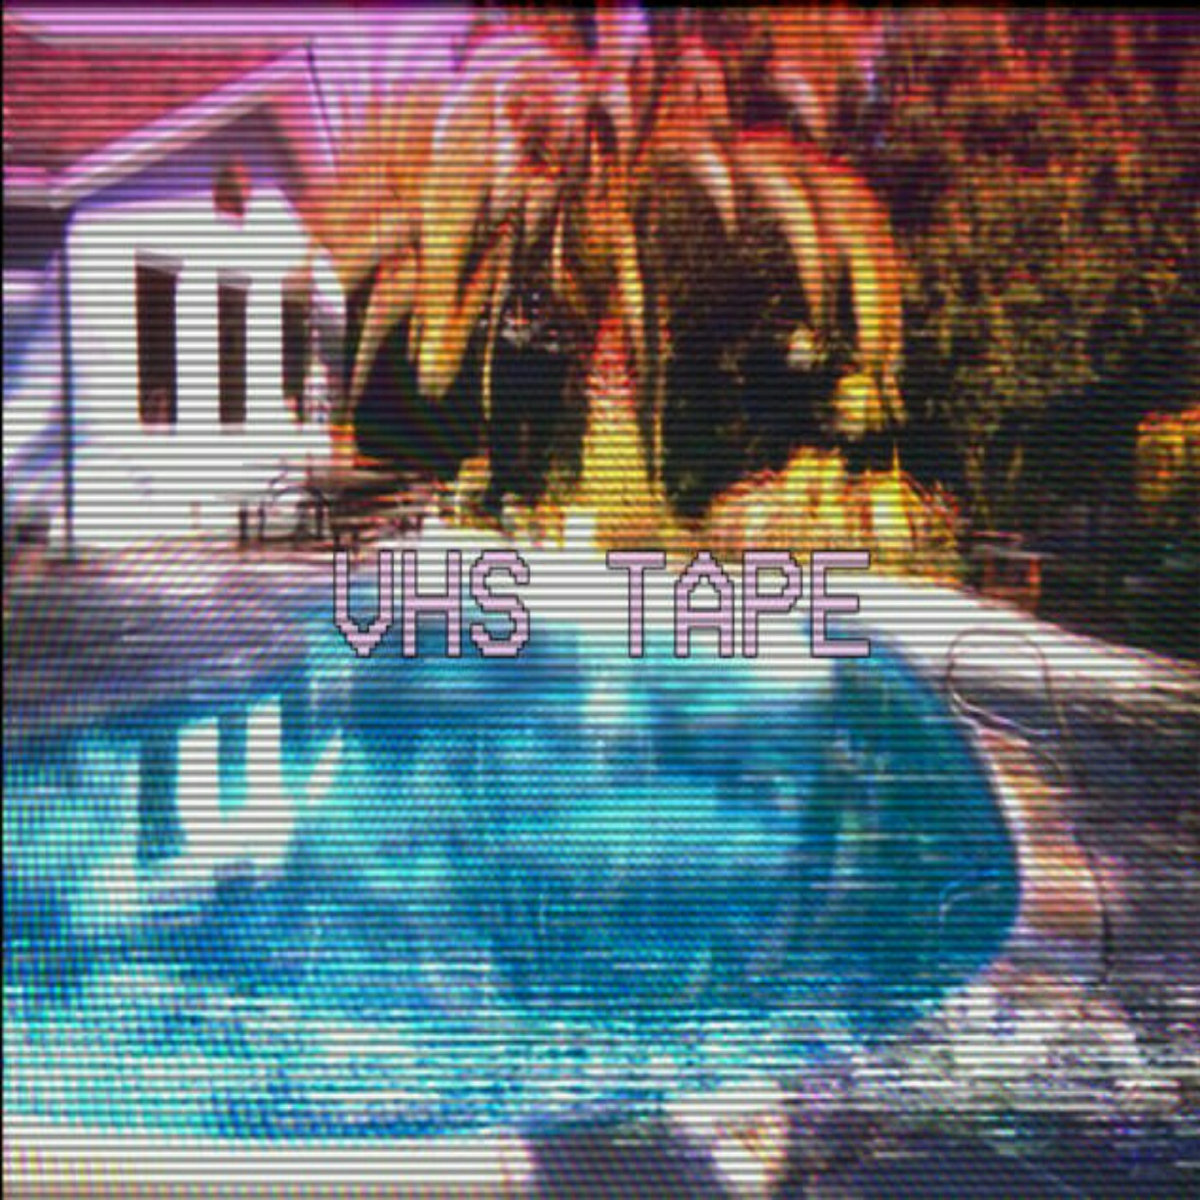 VHS TAPE cover